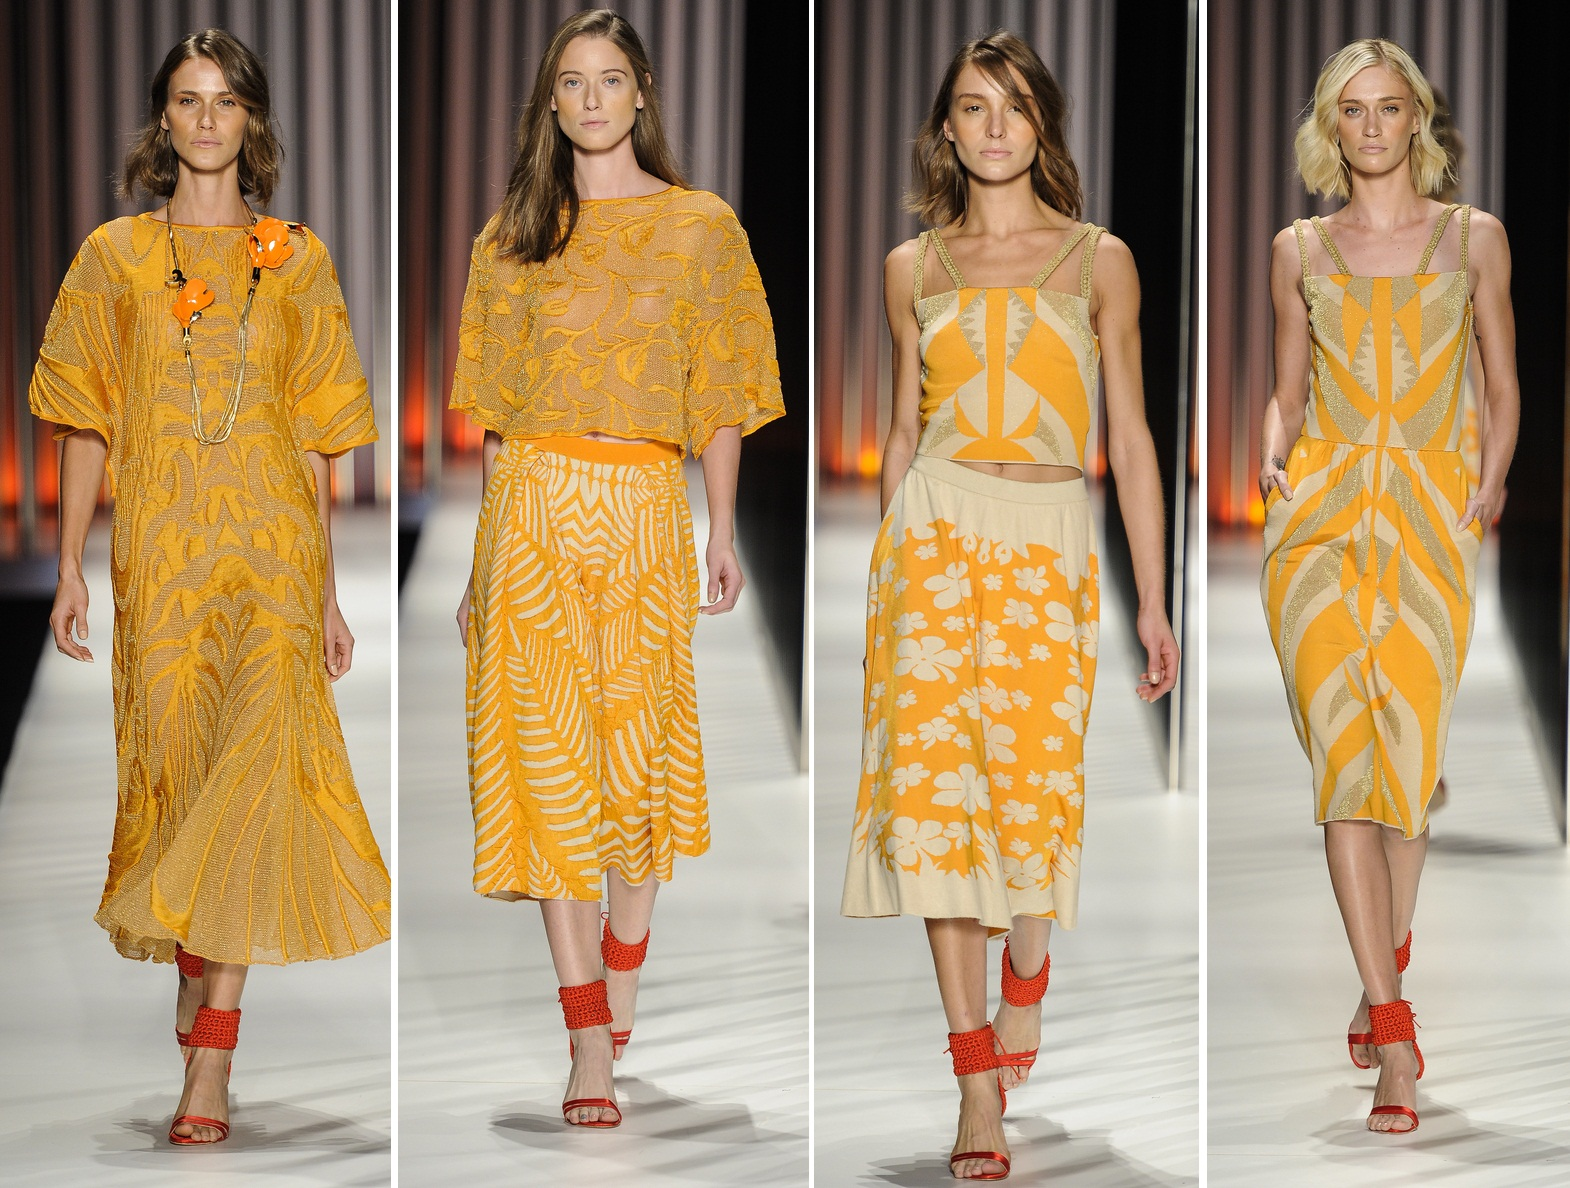 fashion trends Latest fashion trends discover the latest fashion trends and reports by trendstopcom, one of the world's leading trend forecasting agencies for fashion and creative professionals, renowned for its insightful trend analysis and forecasts.